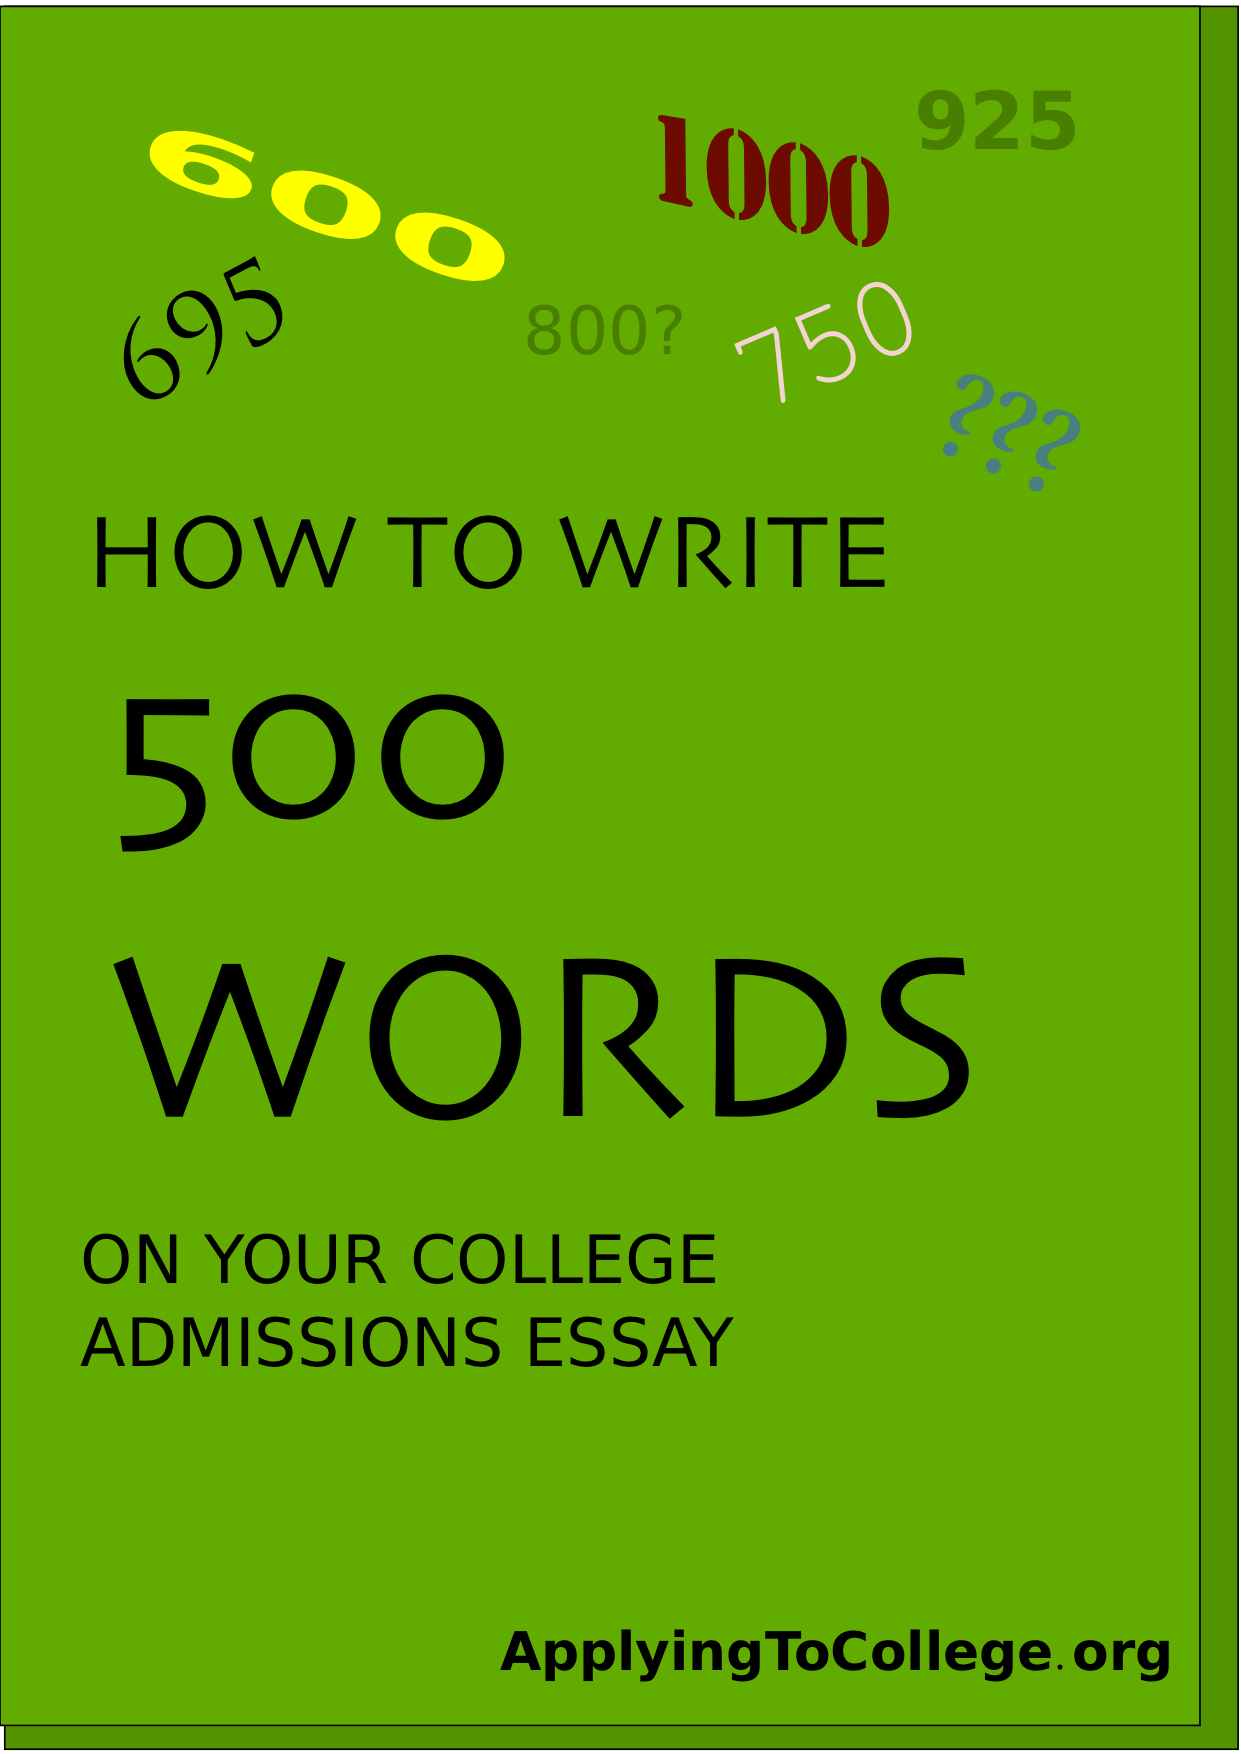 003 2903628546 Word Count For Common Application Essay College Beautiful Maximum 2018 Full